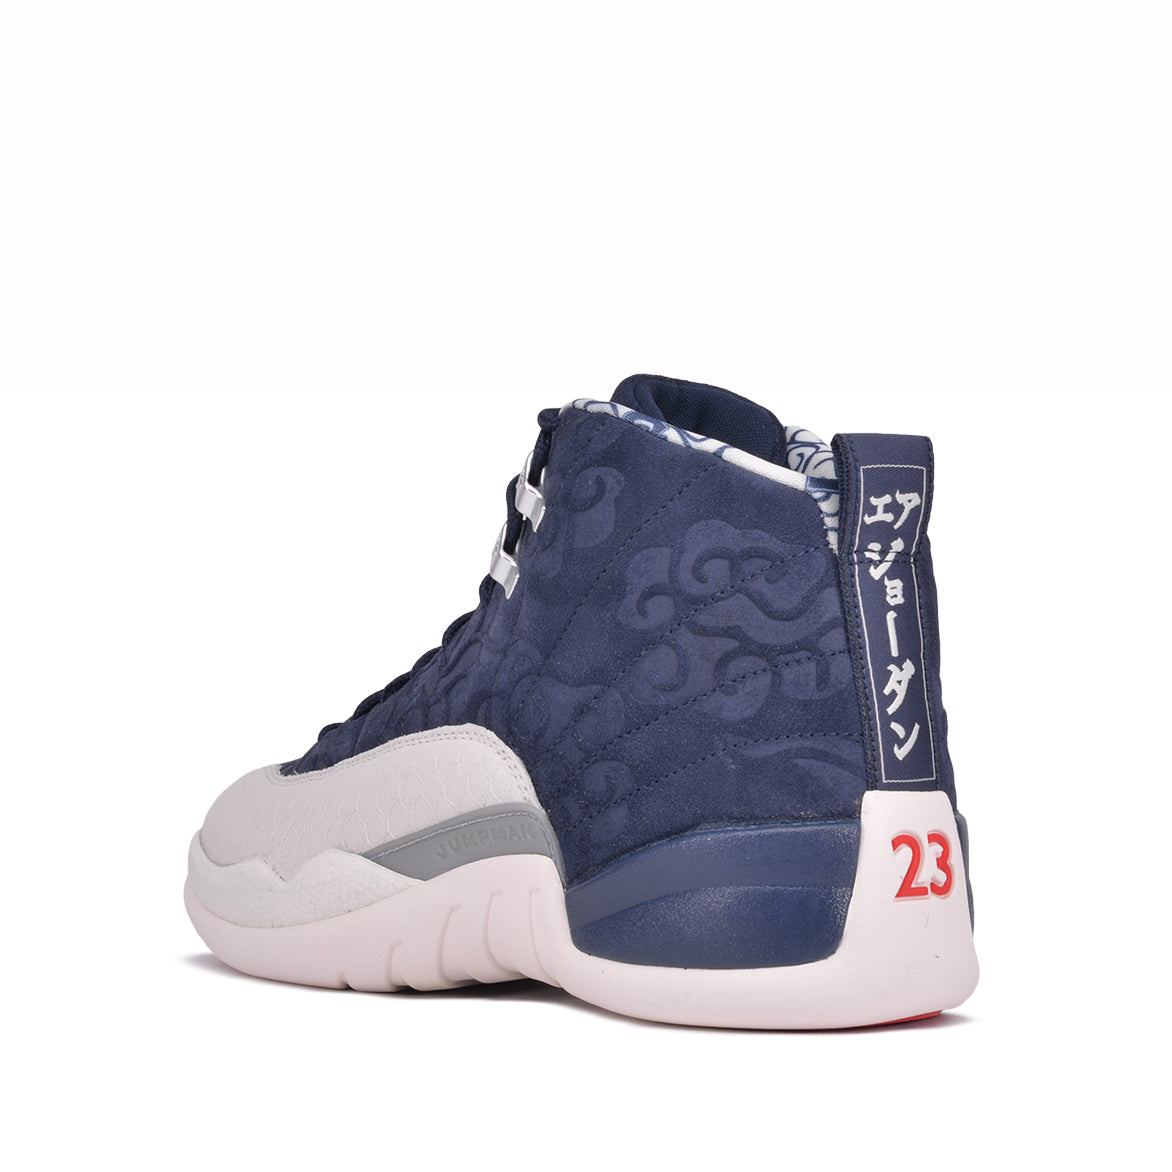 f05e47dab15686 ... discount code for air jordan 12 retro prm international flight e4004  c4522